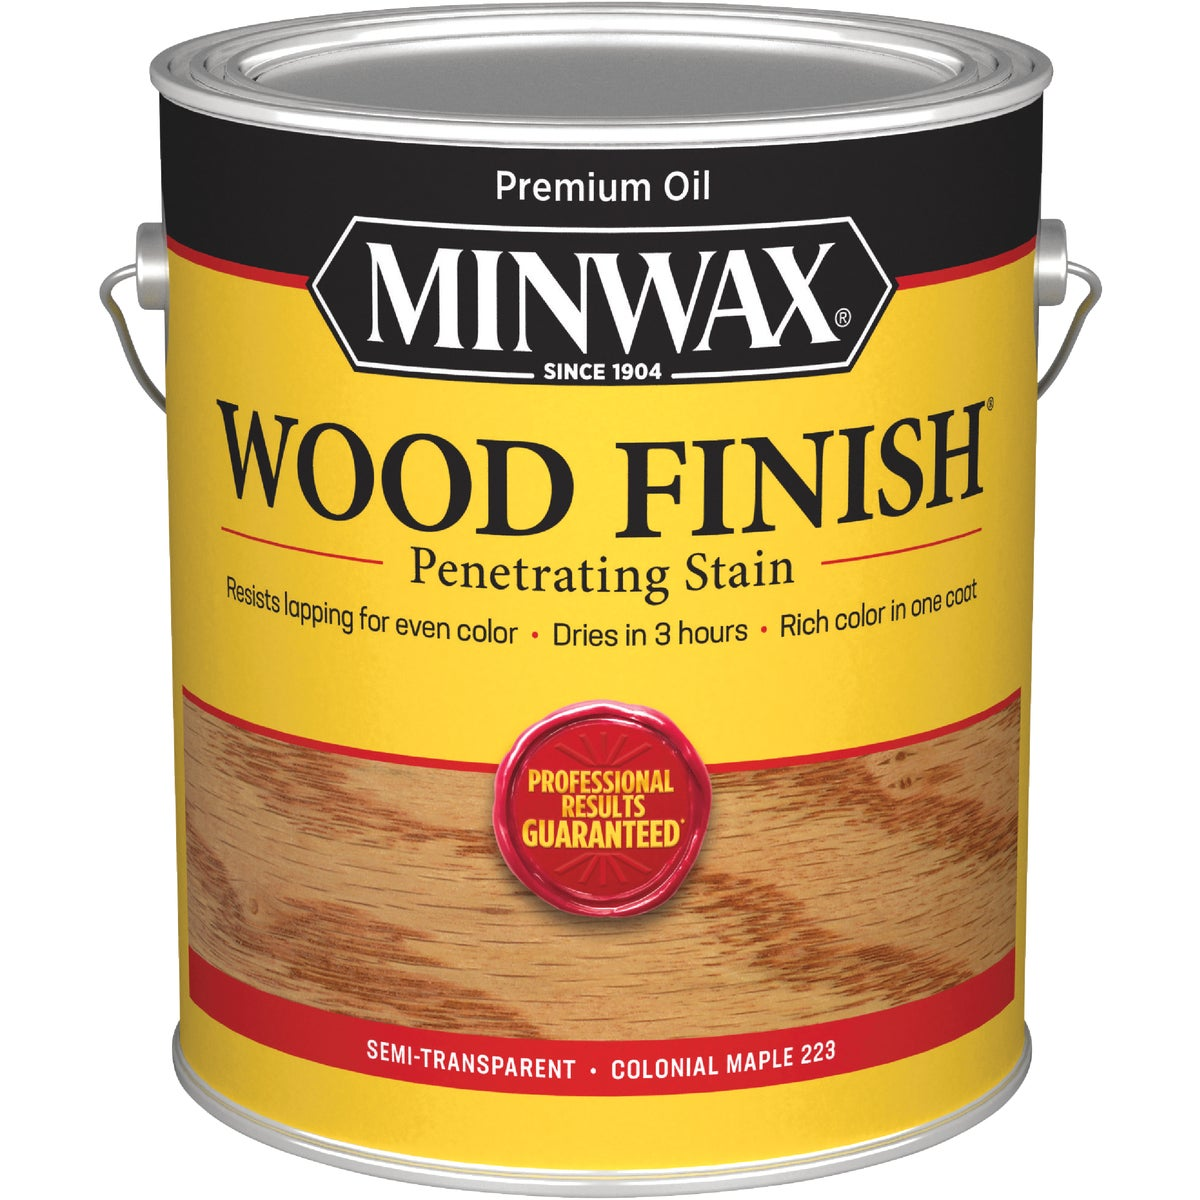 VOC COL MAPLE WOOD STAIN - 710750000 by Minwax Company